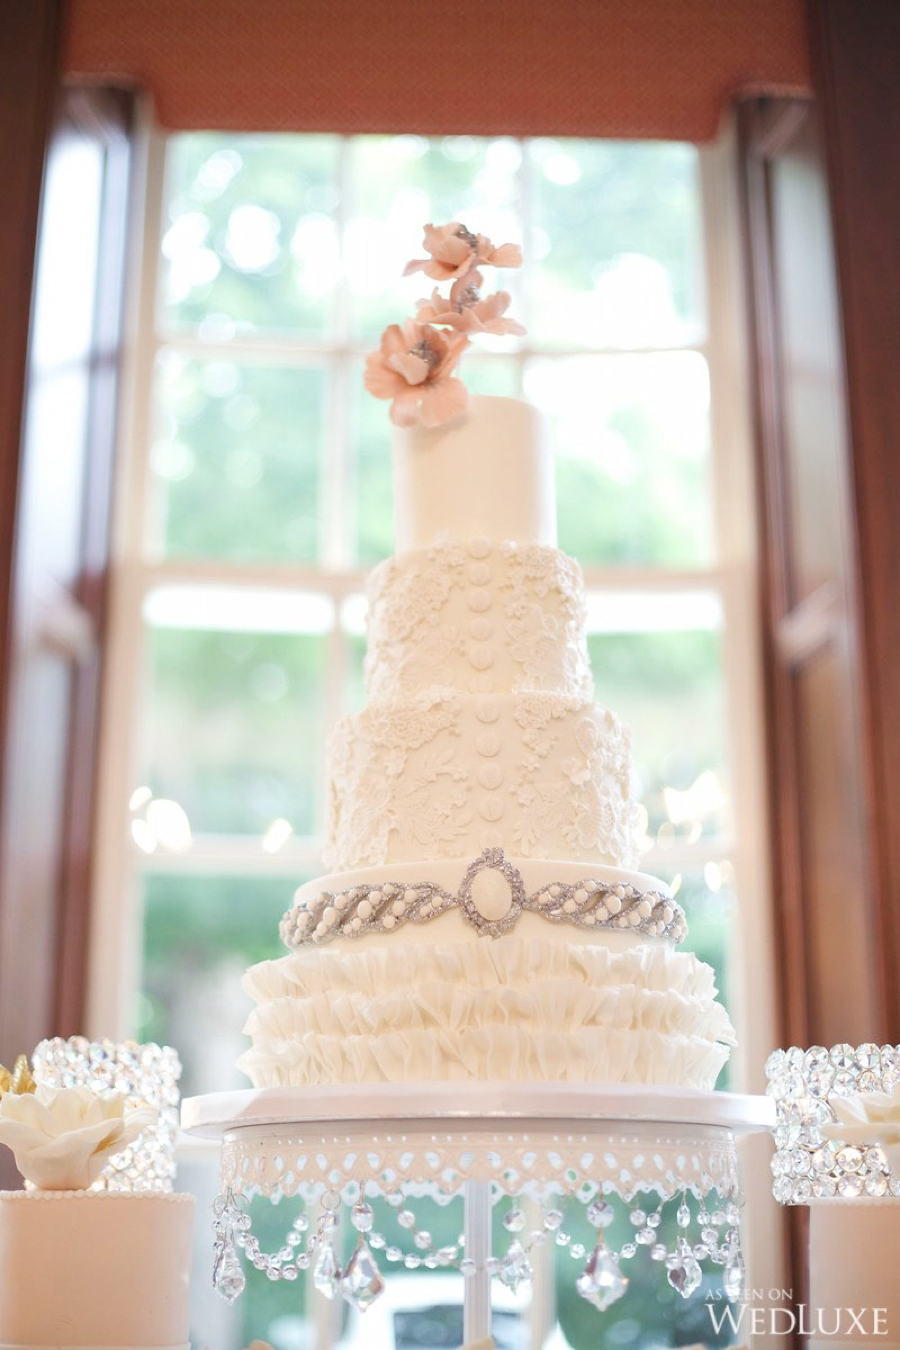 Cake:  Truffle Cake & Pastry  Photo:  Hoyin Siu Photography Studio